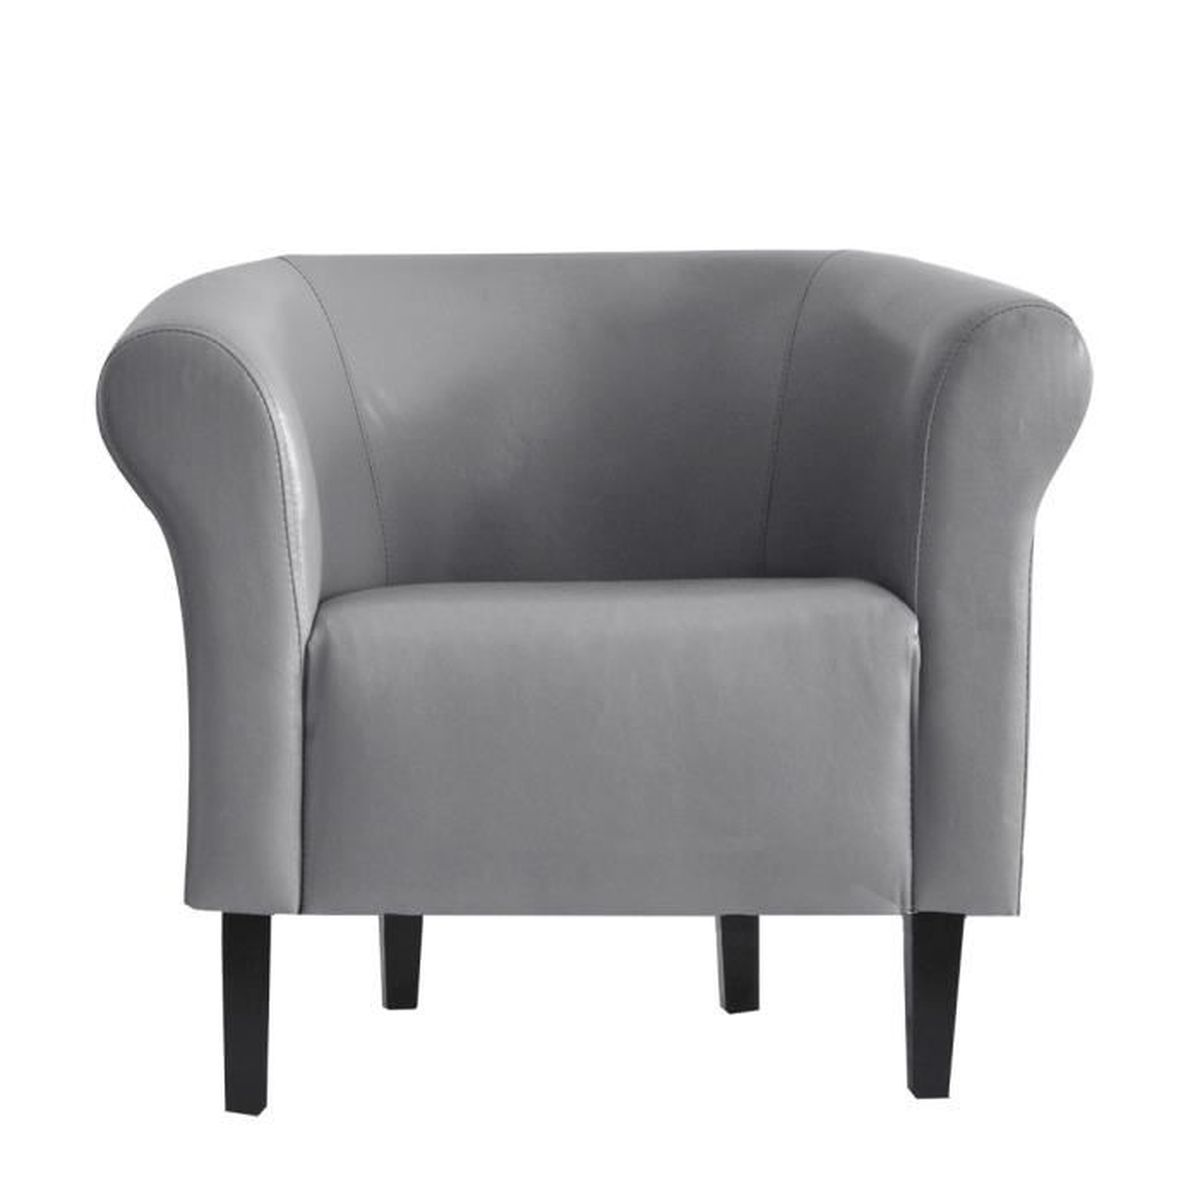 Fauteuil Cuir Gris Best Nevada Fauteuil Cuir Gris Vintage With